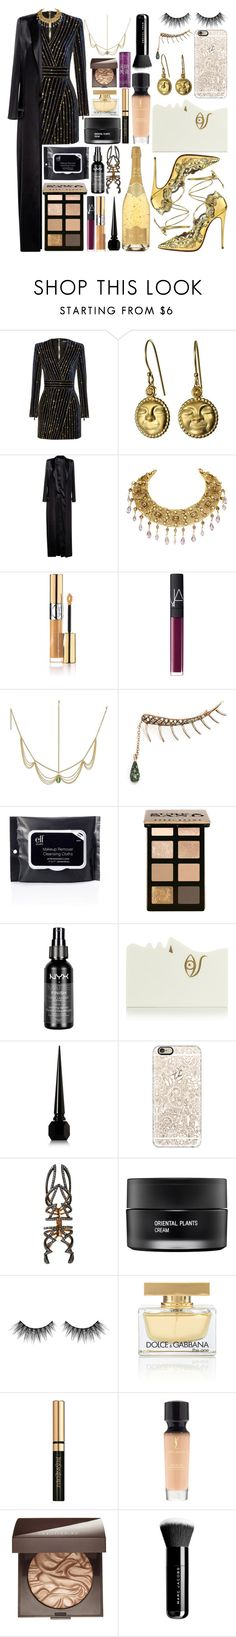 """Navegar Los 7 Mares"" by aida-indeguy ❤ liked on Polyvore featuring Balmain, Christian Louboutin, Anthony Vaccarello, Yves Saint Laurent, NARS Cosmetics, Ileana Makri, Bobbi Brown Cosmetics, NYX, Charlotte Olympia and Casetify"